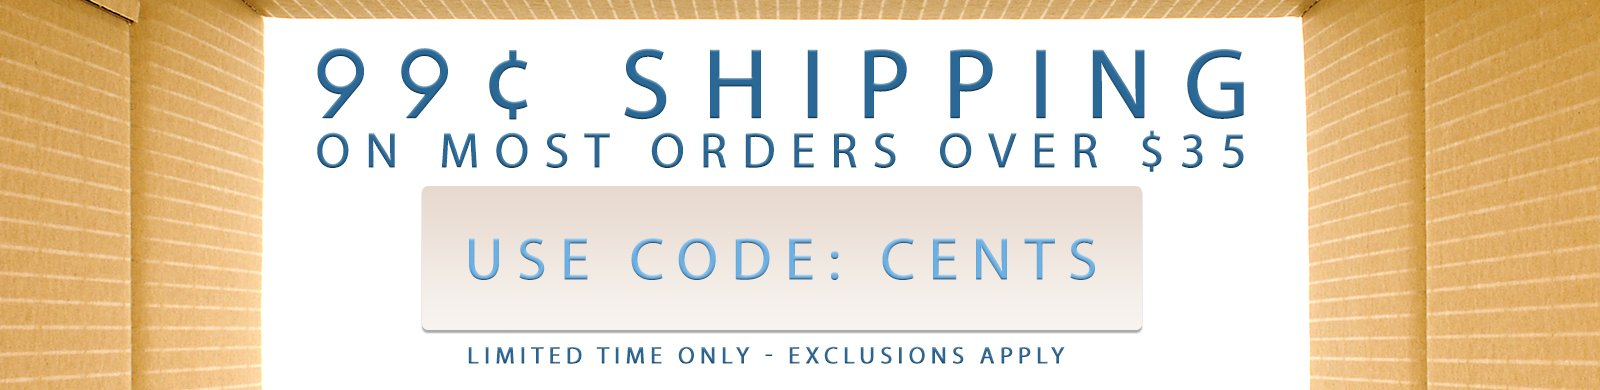 99¢ shipping on most orders over $35